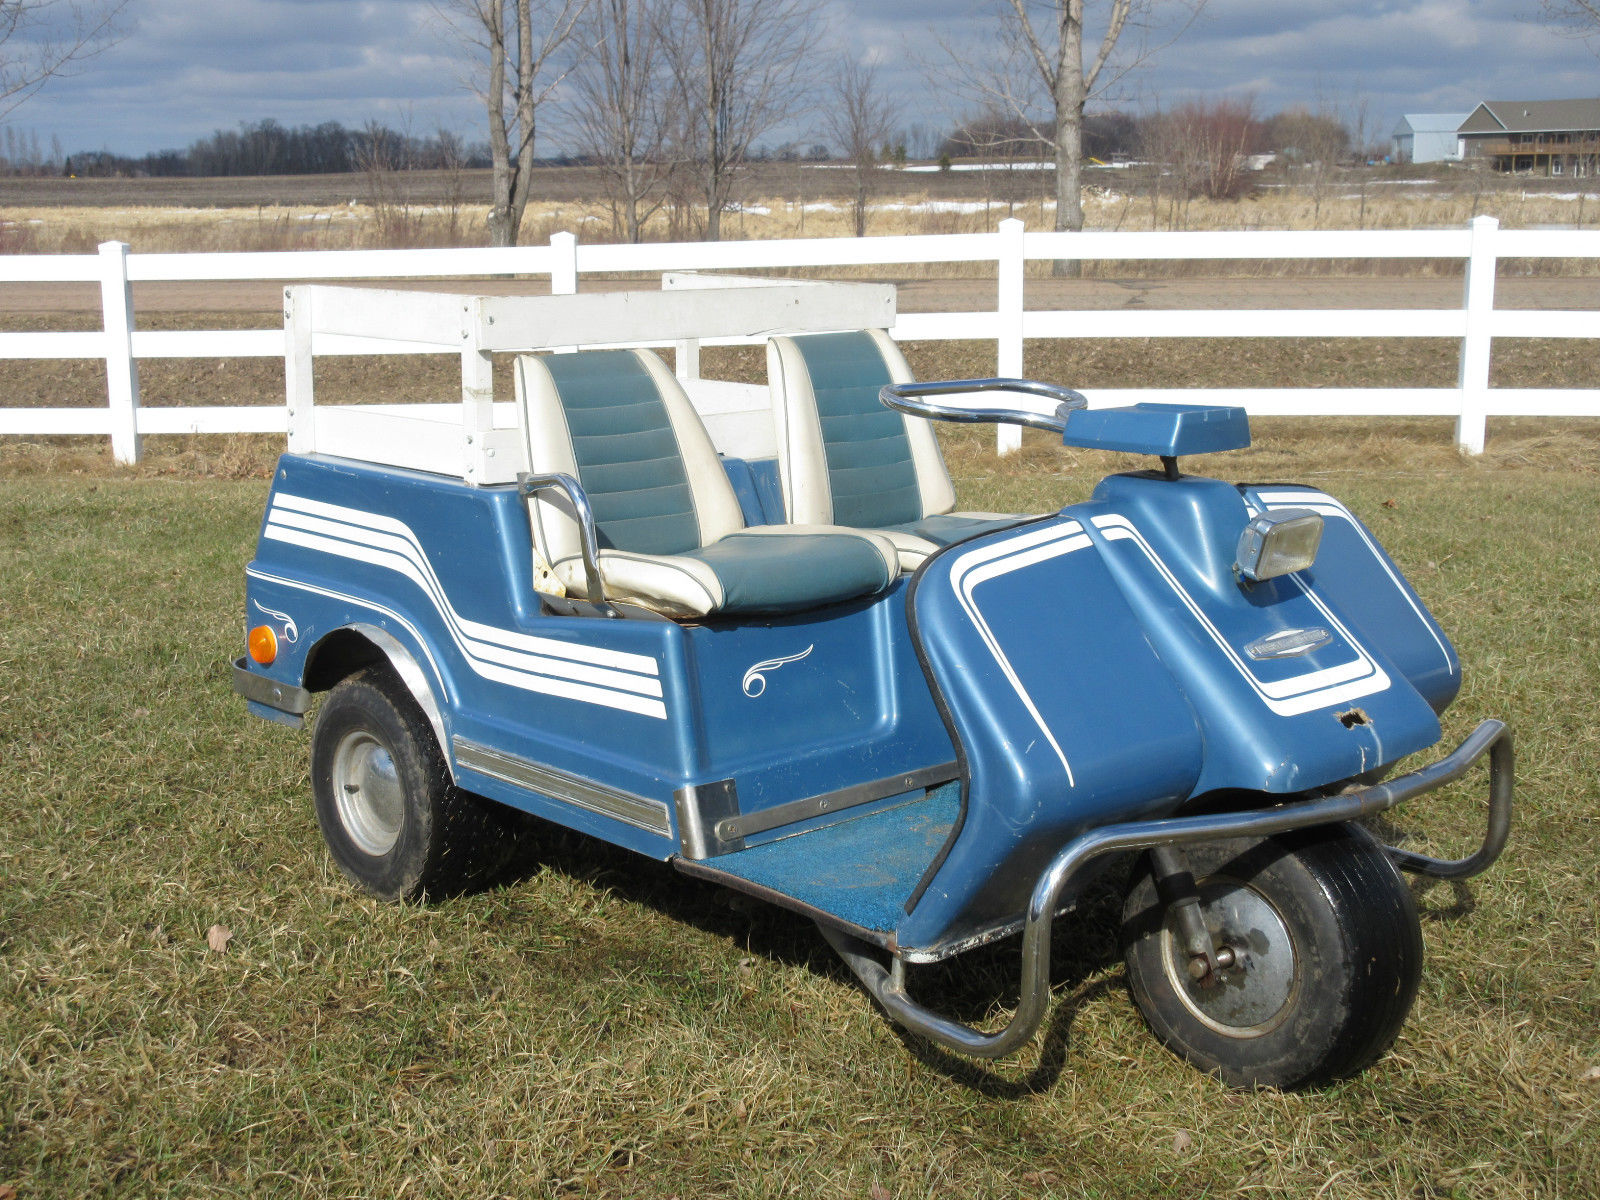 1969 Harley Davidson 3 Wheel Electric GOLF CAR / CART for sale